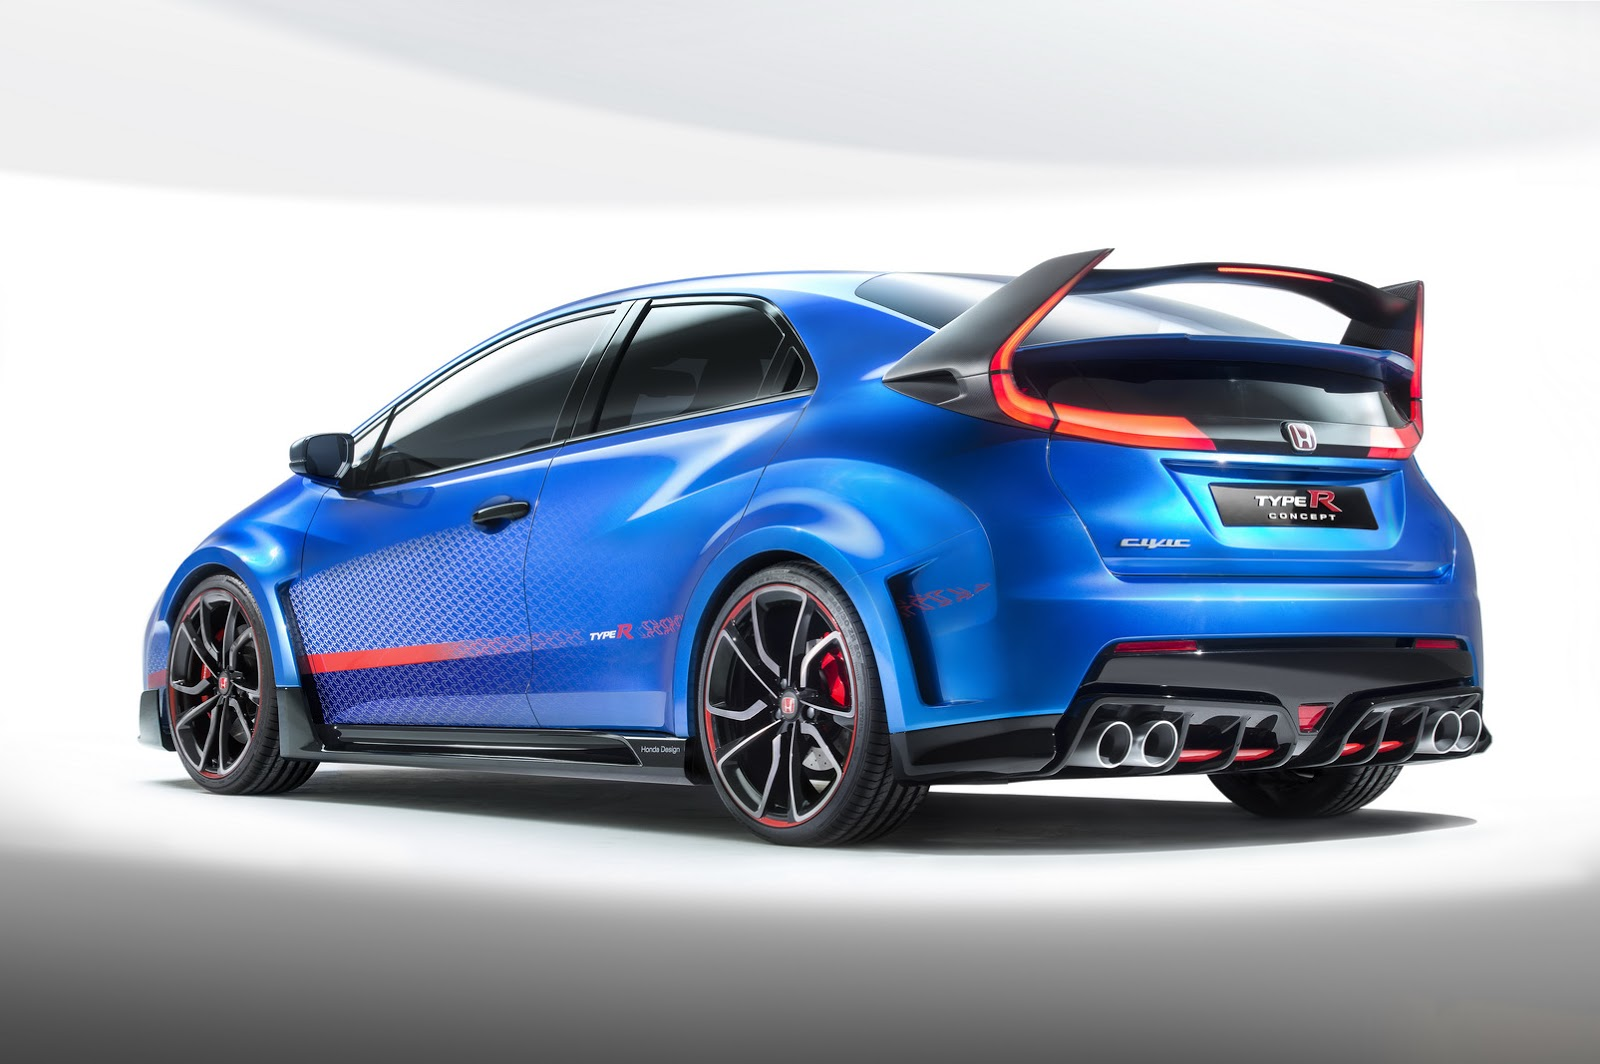 honda says new civic type r will outperform even the nsx. Black Bedroom Furniture Sets. Home Design Ideas